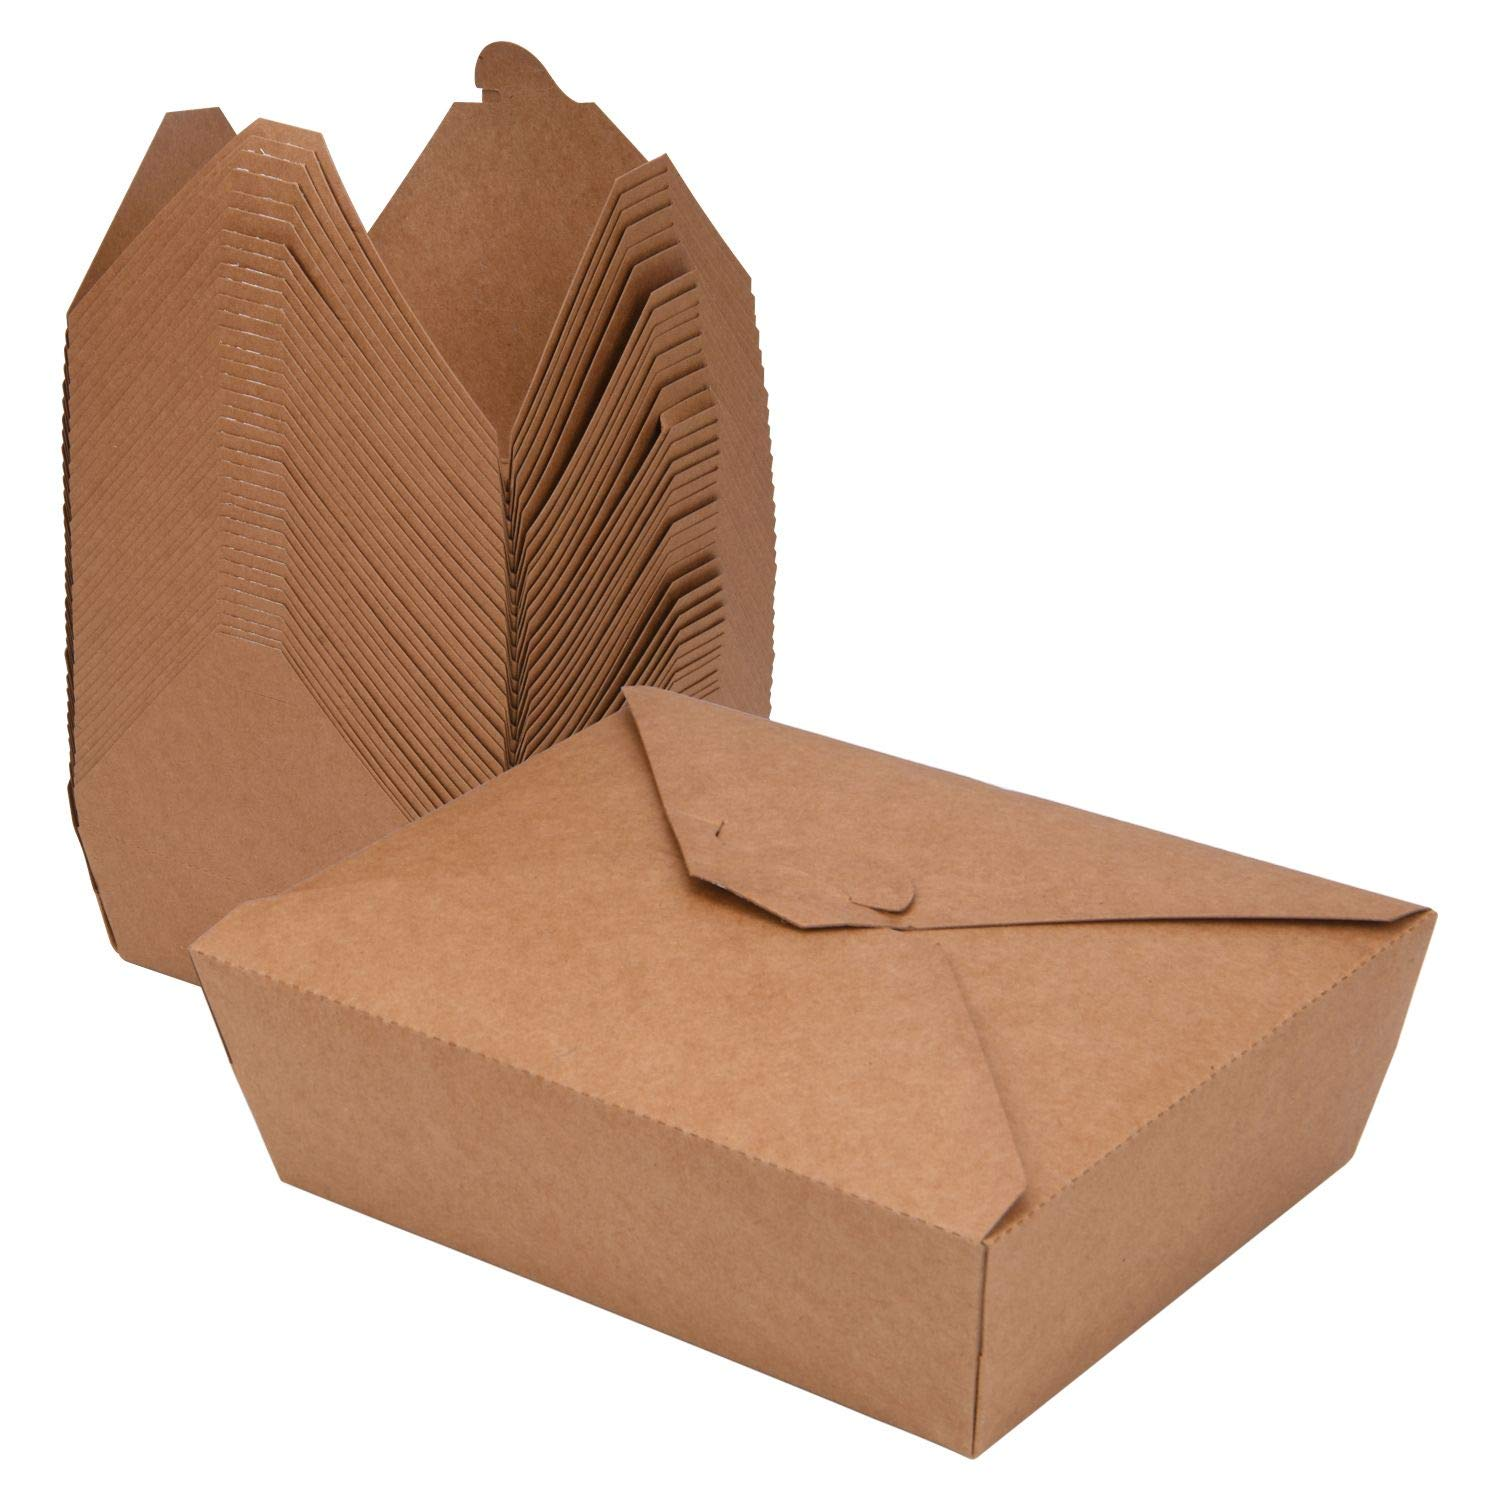 38 Oz Take Out Food Containers (50 Pack) Disposable Kraft Paper Food Container Takeout Box Microwaveble